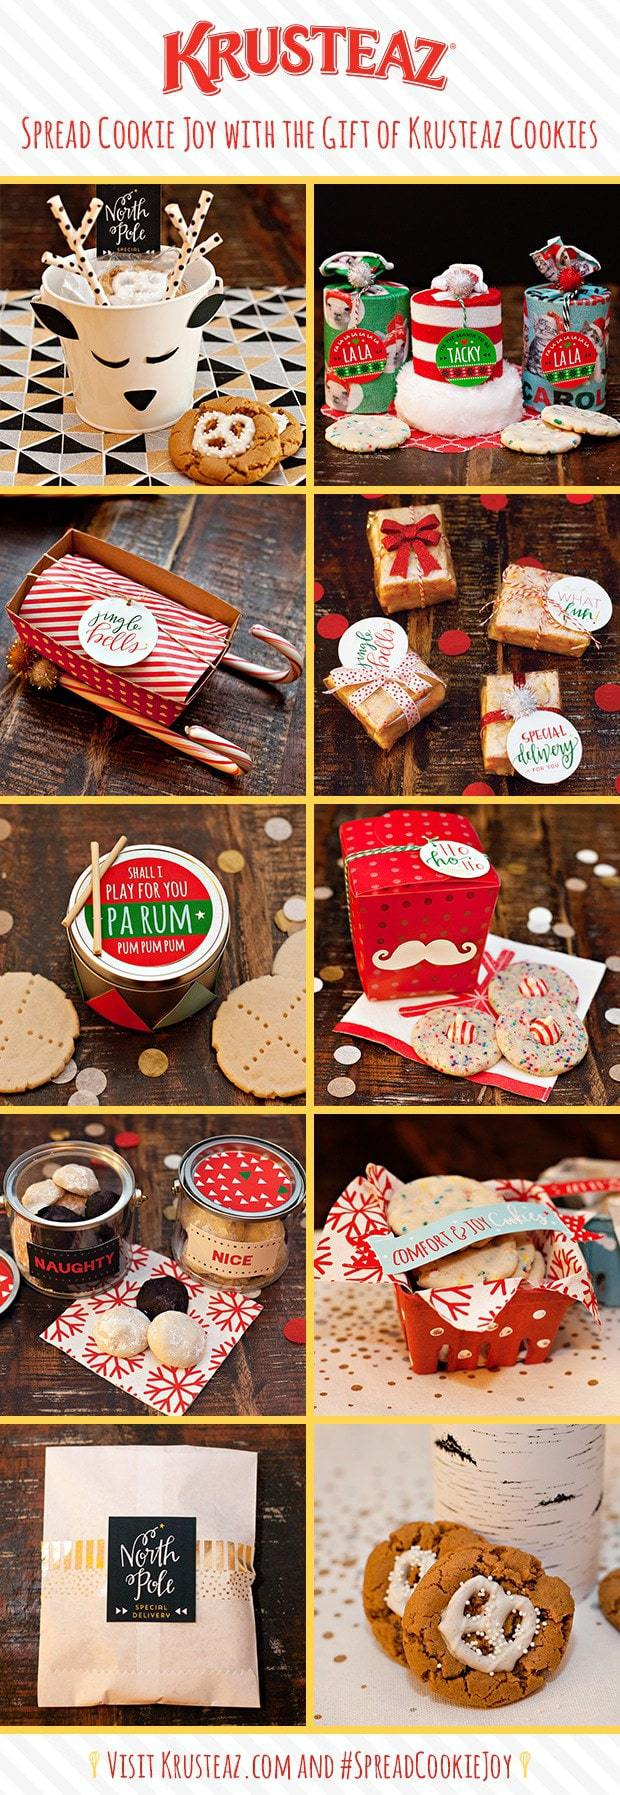 Krusteaz-Spread-Cookie-Joy-Collage-Image